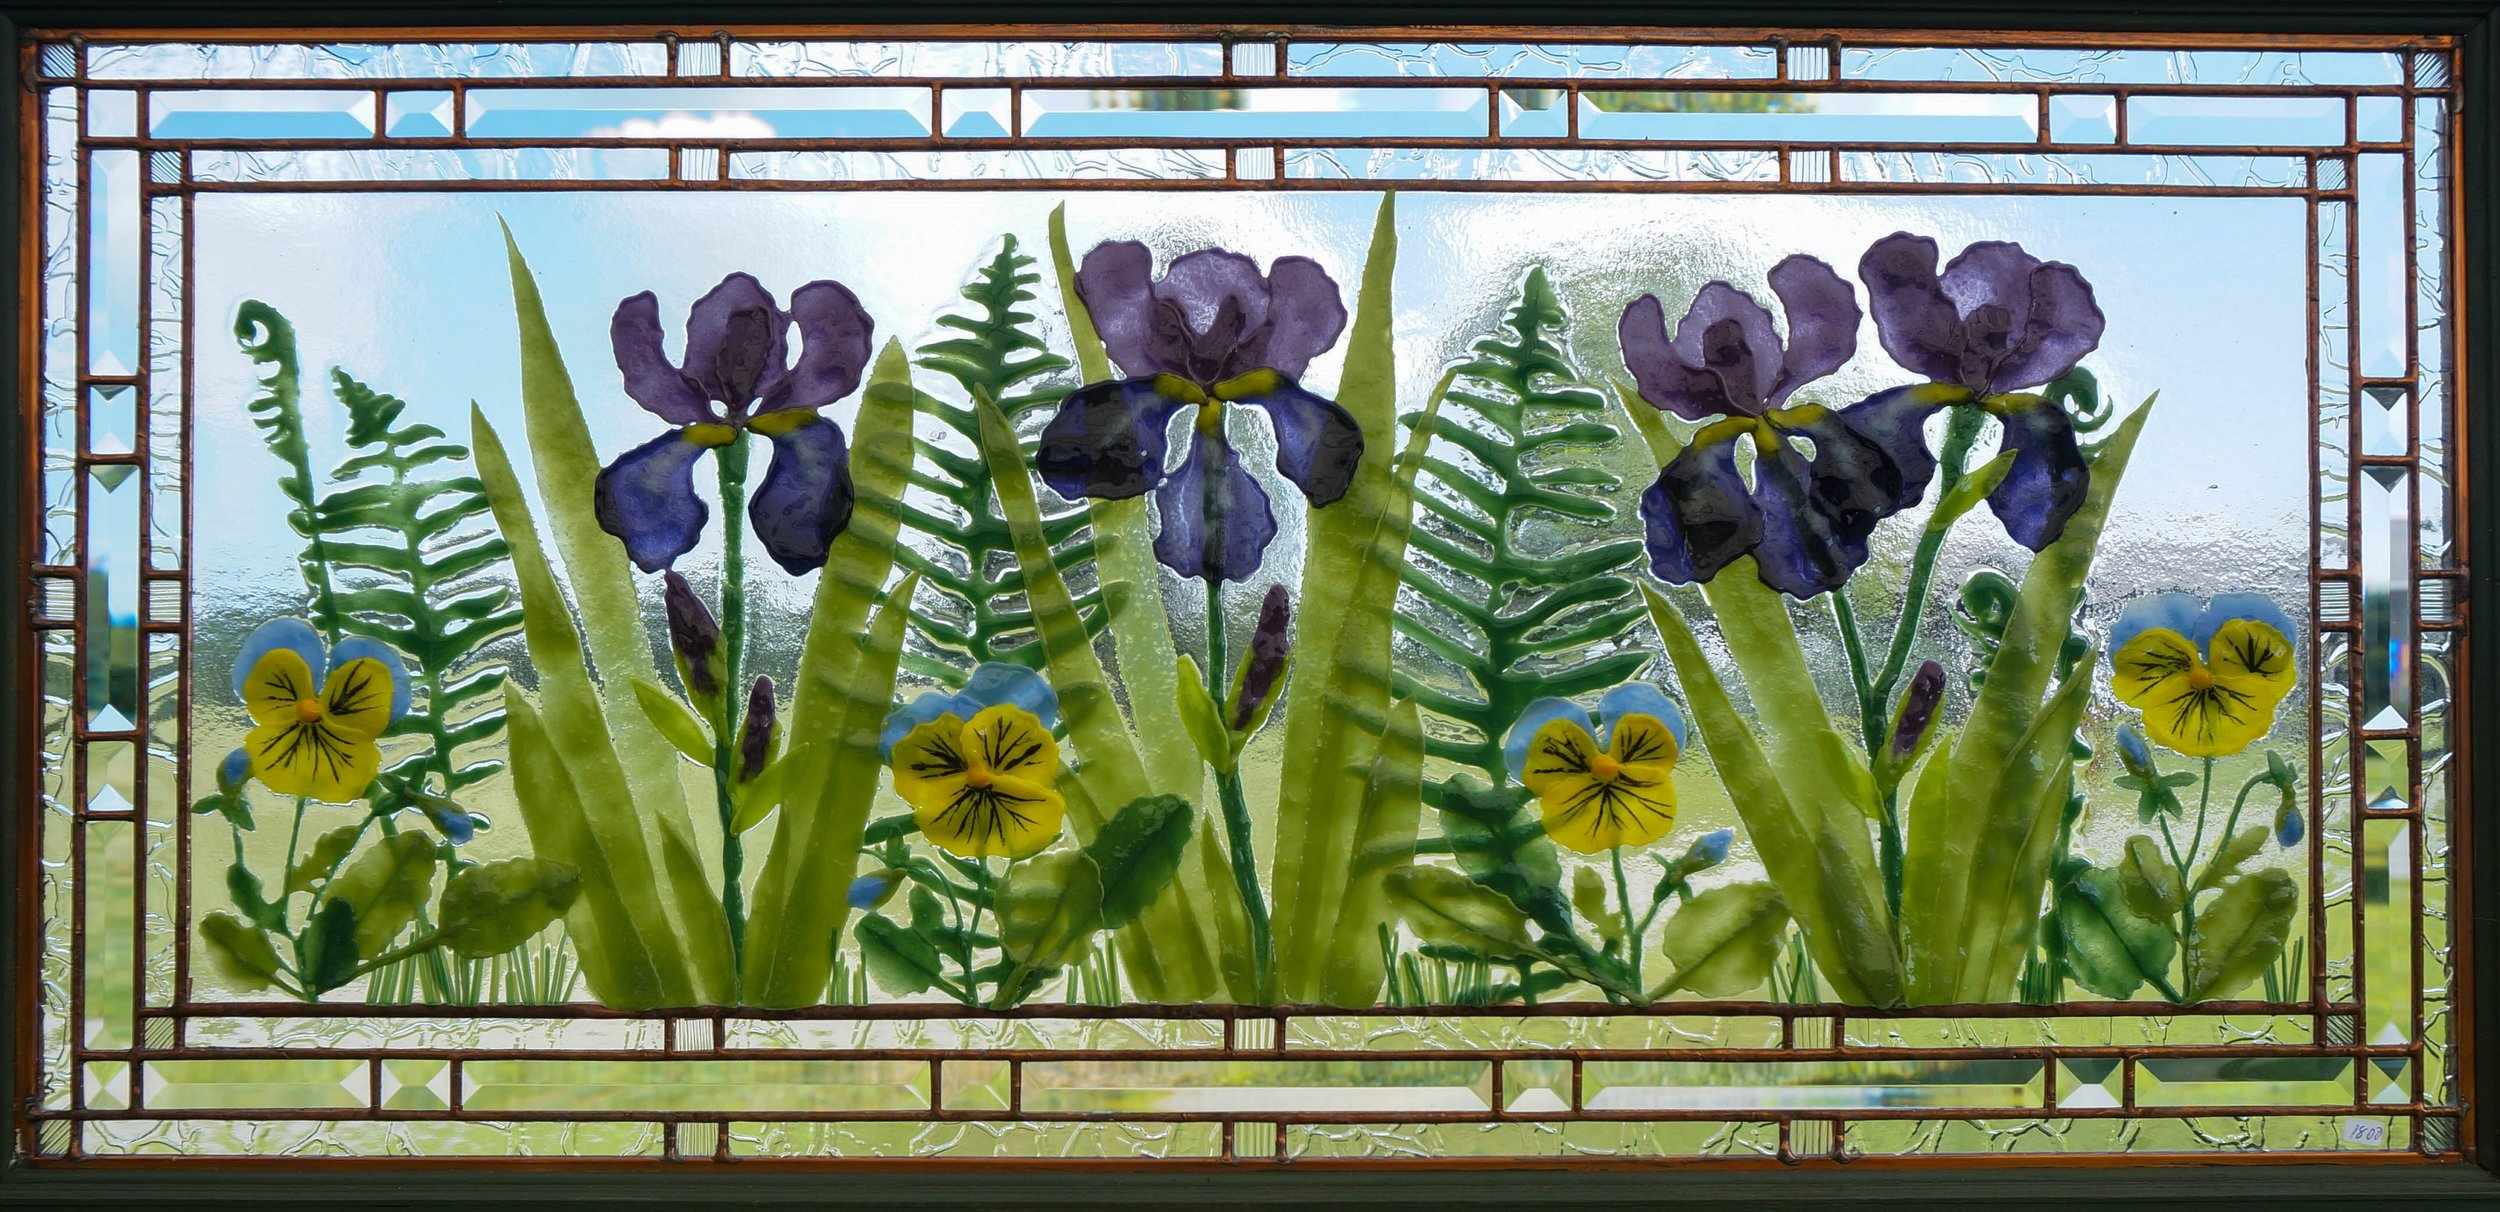 Iris and ferns with pansies